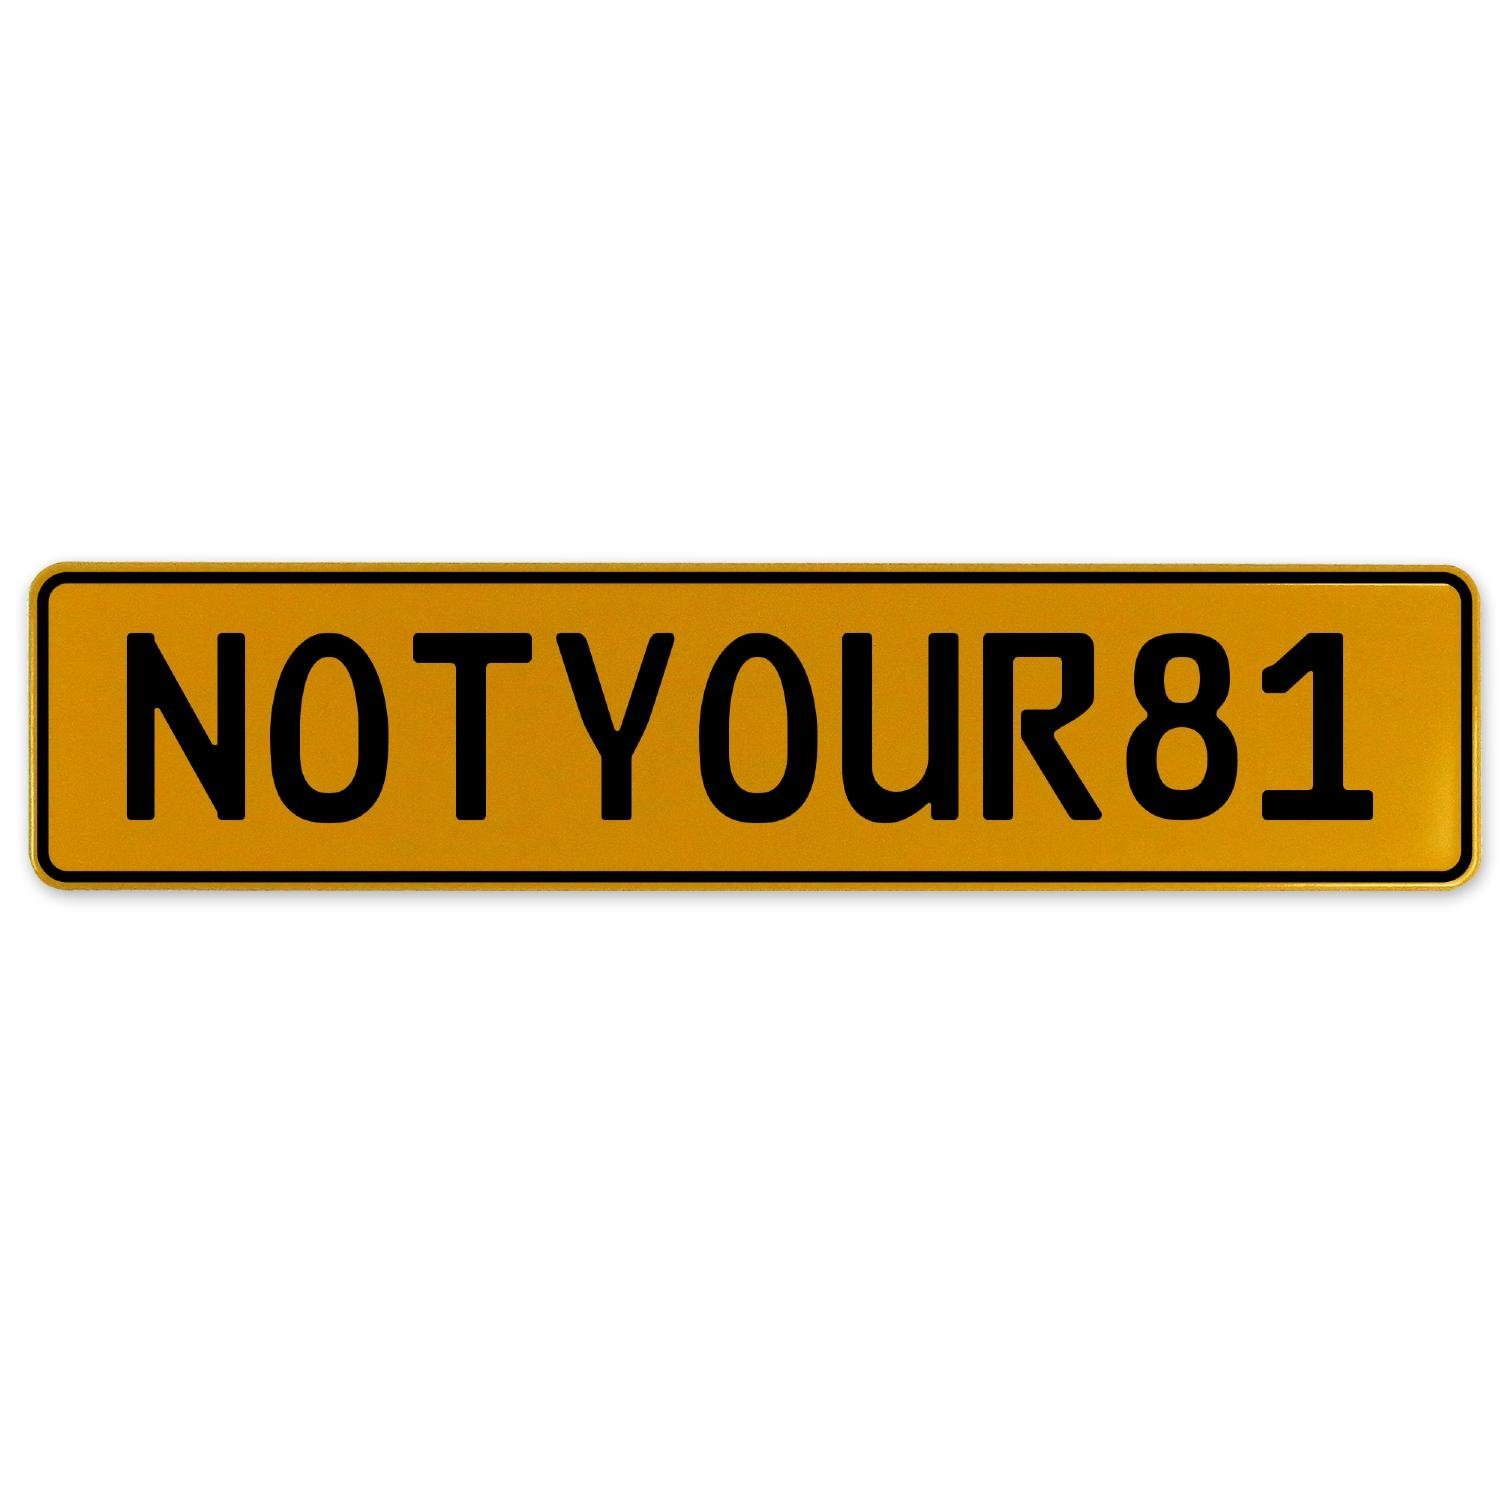 Vintage Parts 560519 NOTYOUR81 Yellow Stamped Aluminum European Plate